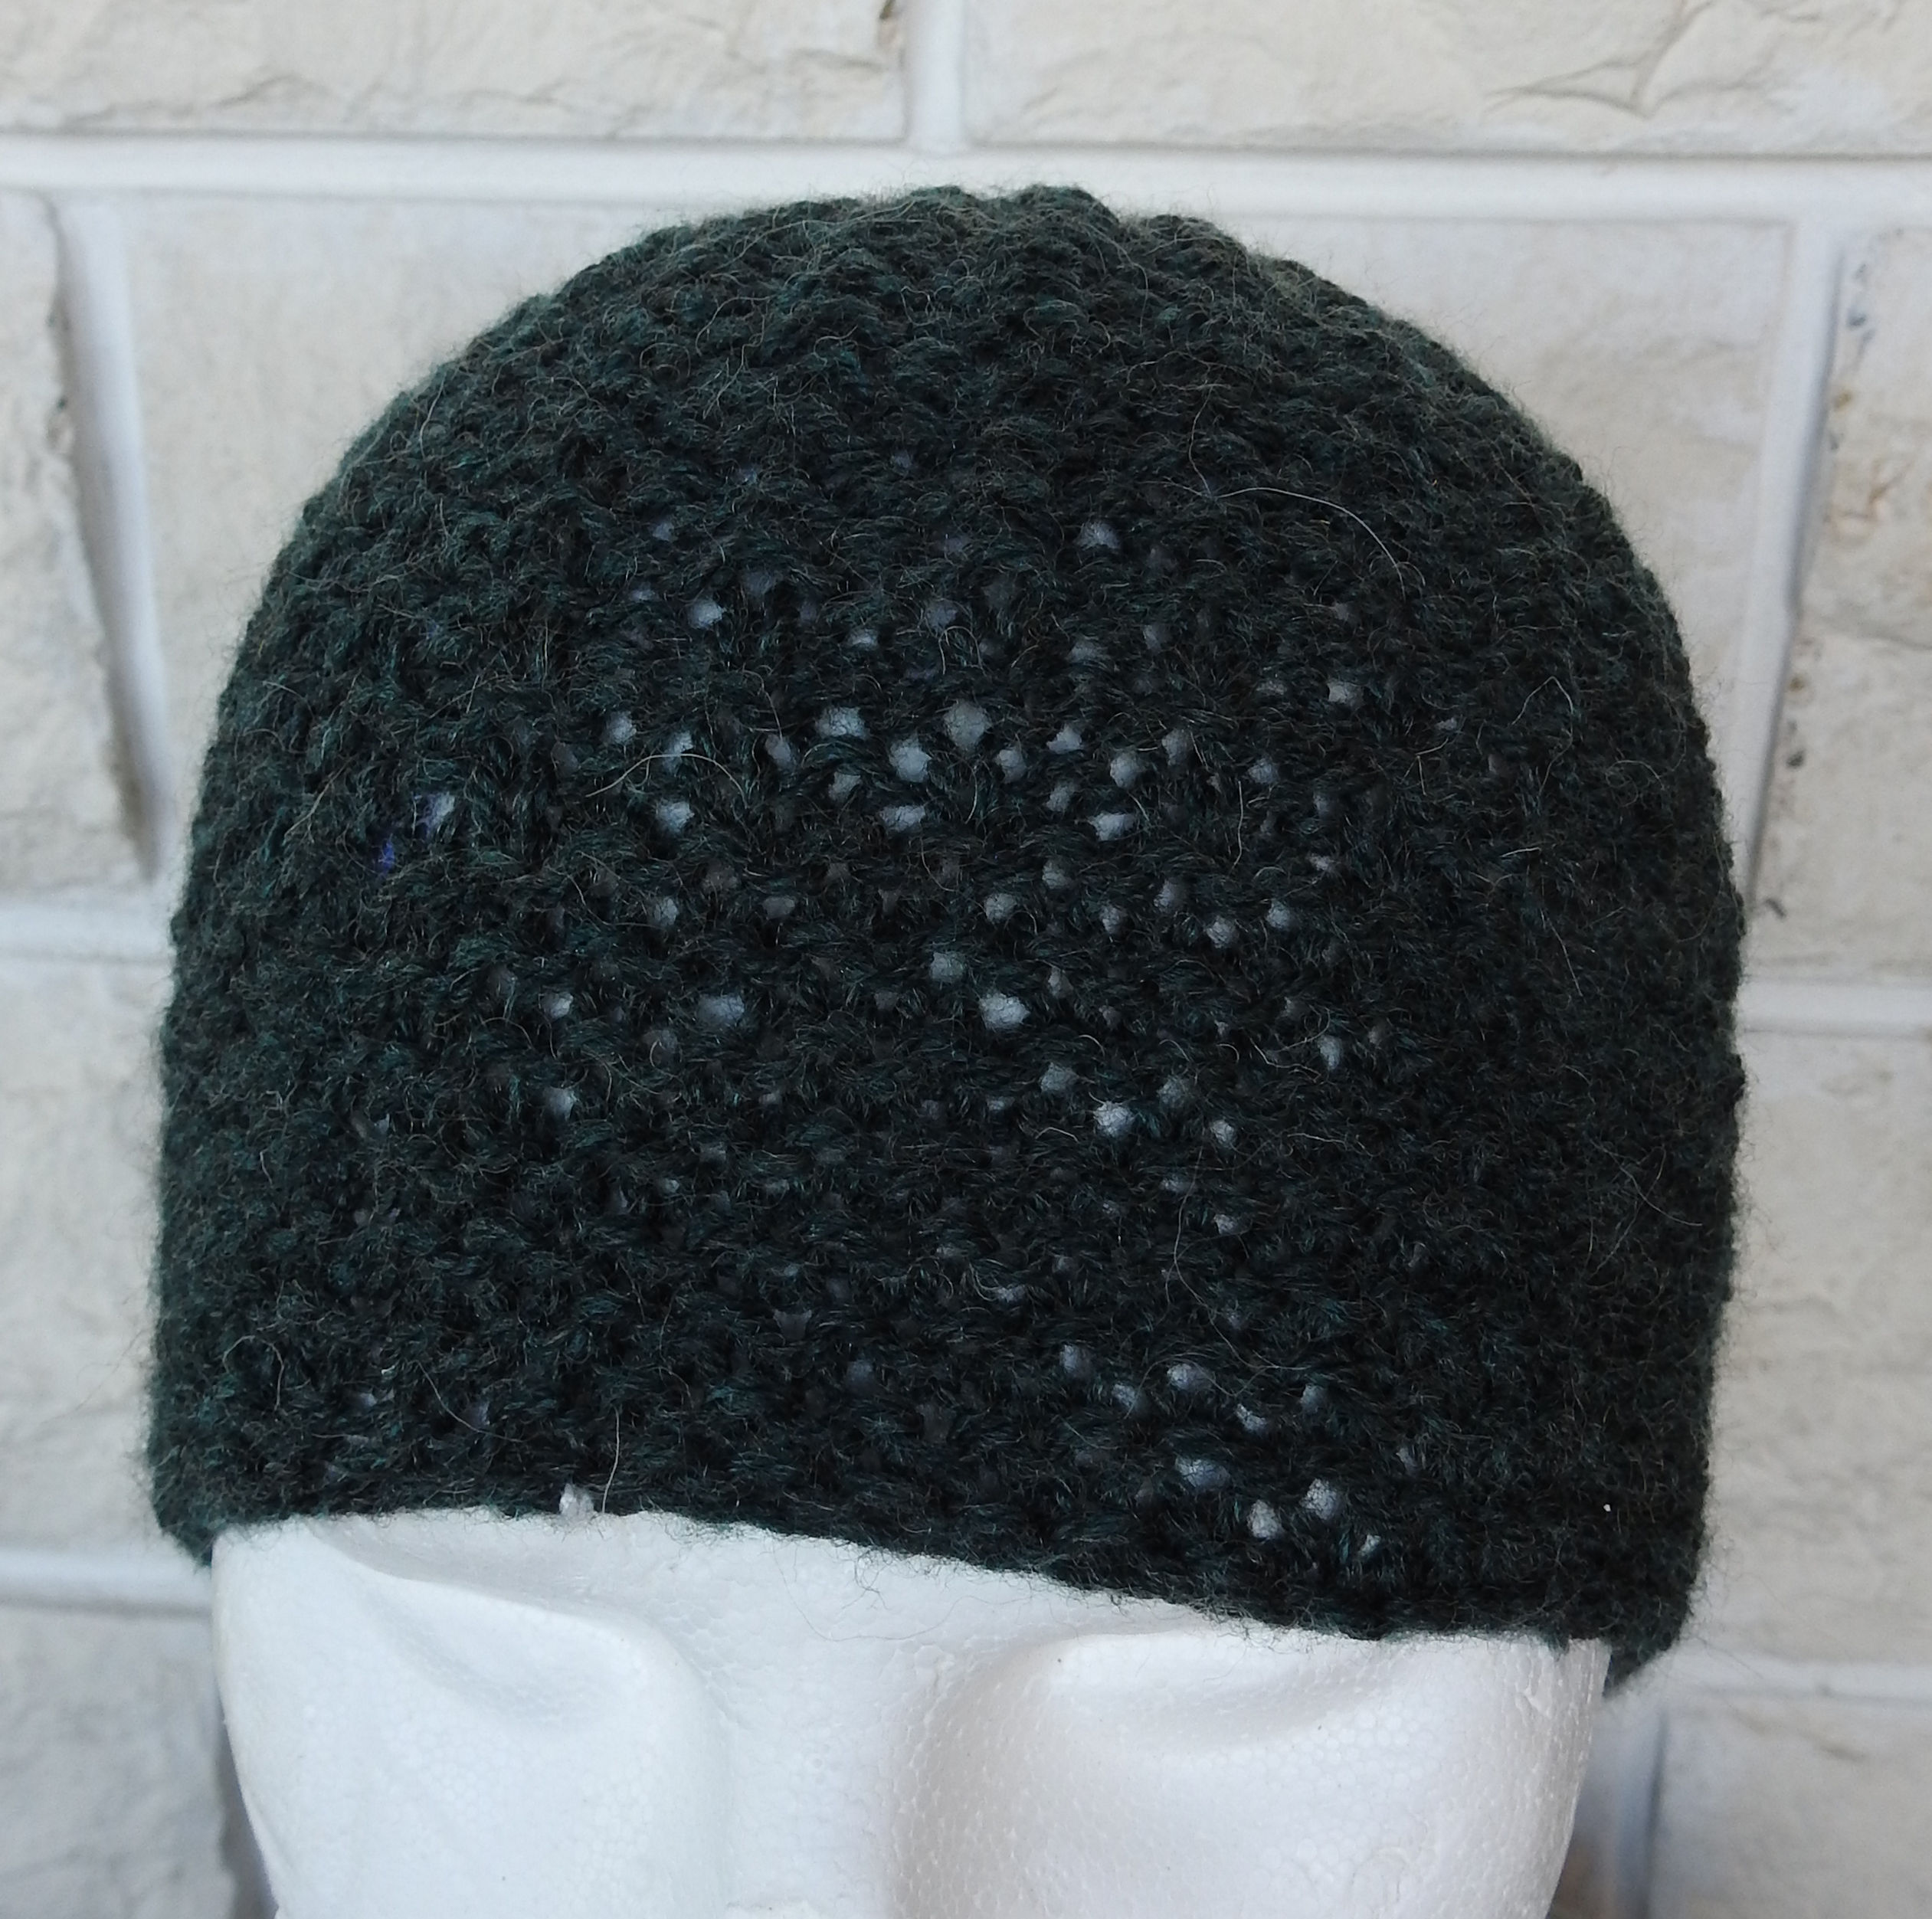 Knitted Dark Green Mens Winter Beanie Hat Free Shipping Dreams